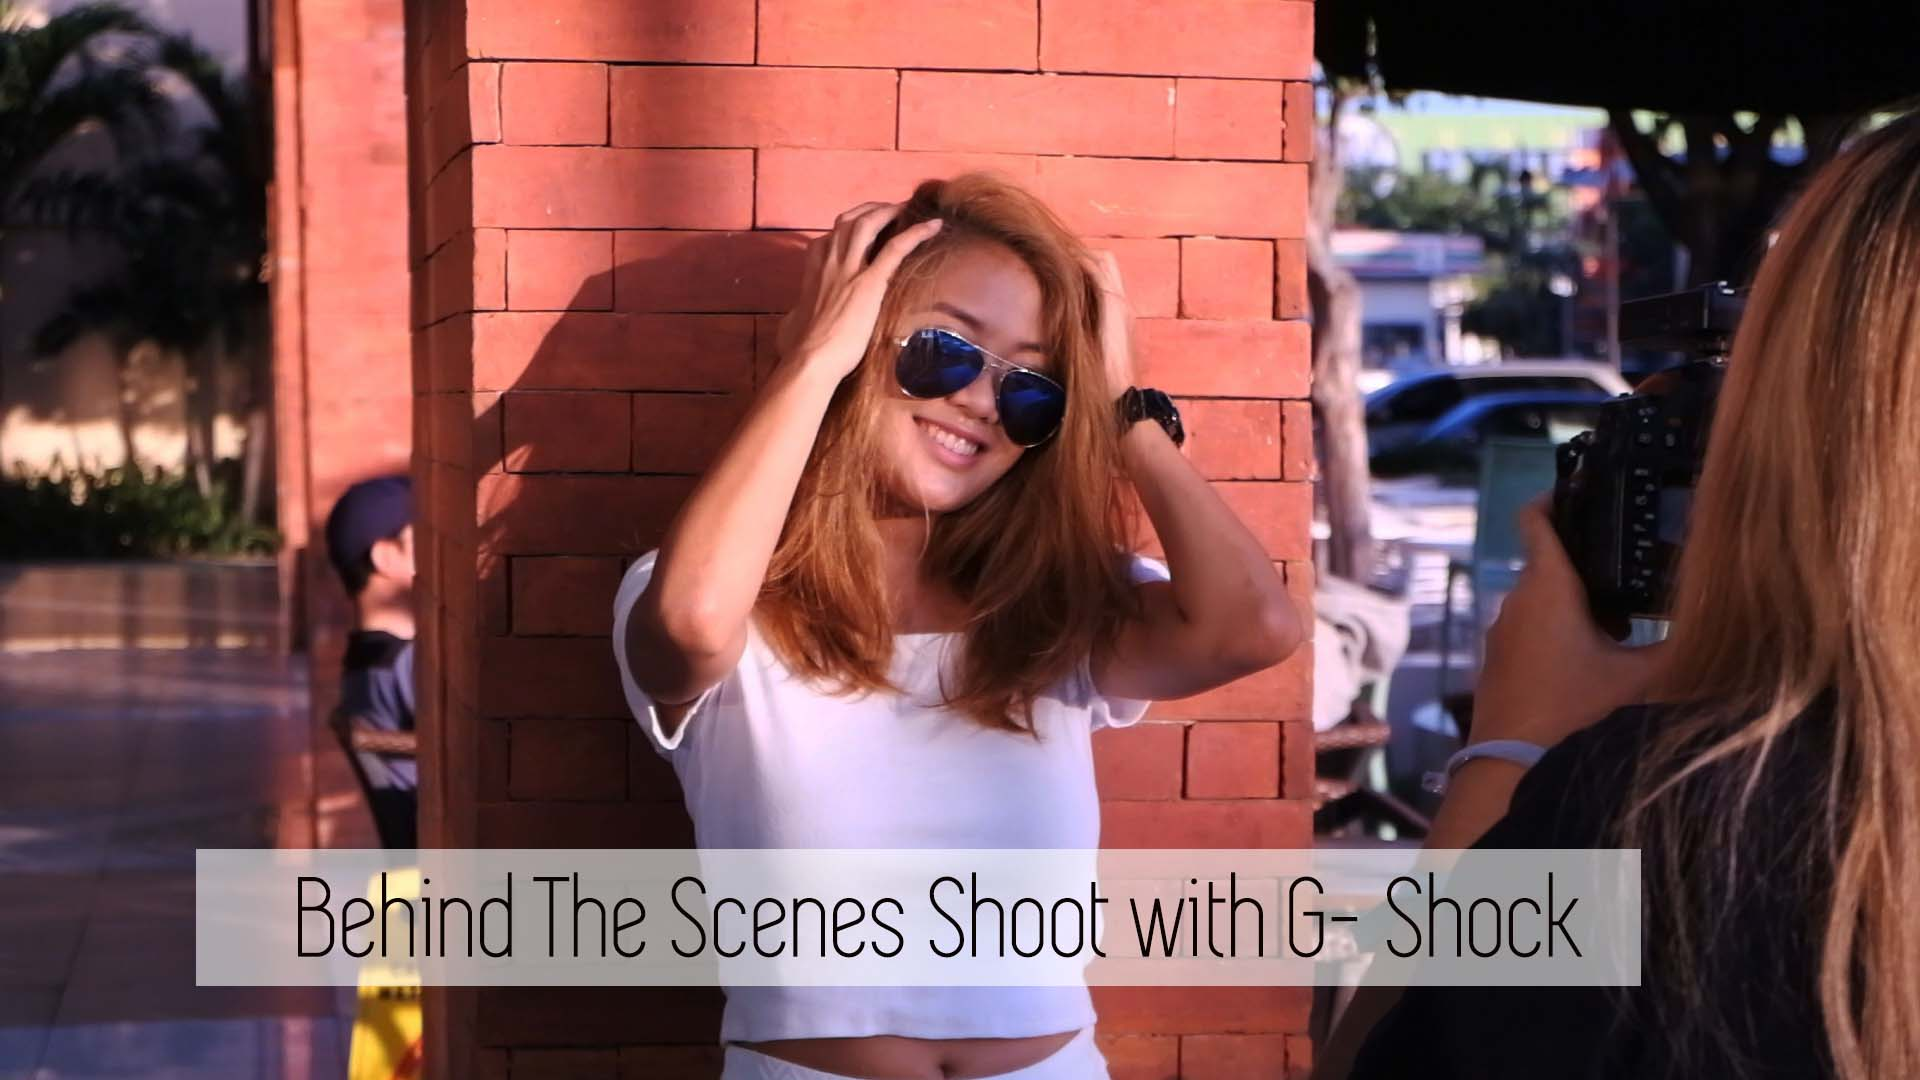 [VLOG] Behind The Scenes with G Shock & Shockwear Watches @ The Outlets at Pueblo Verde